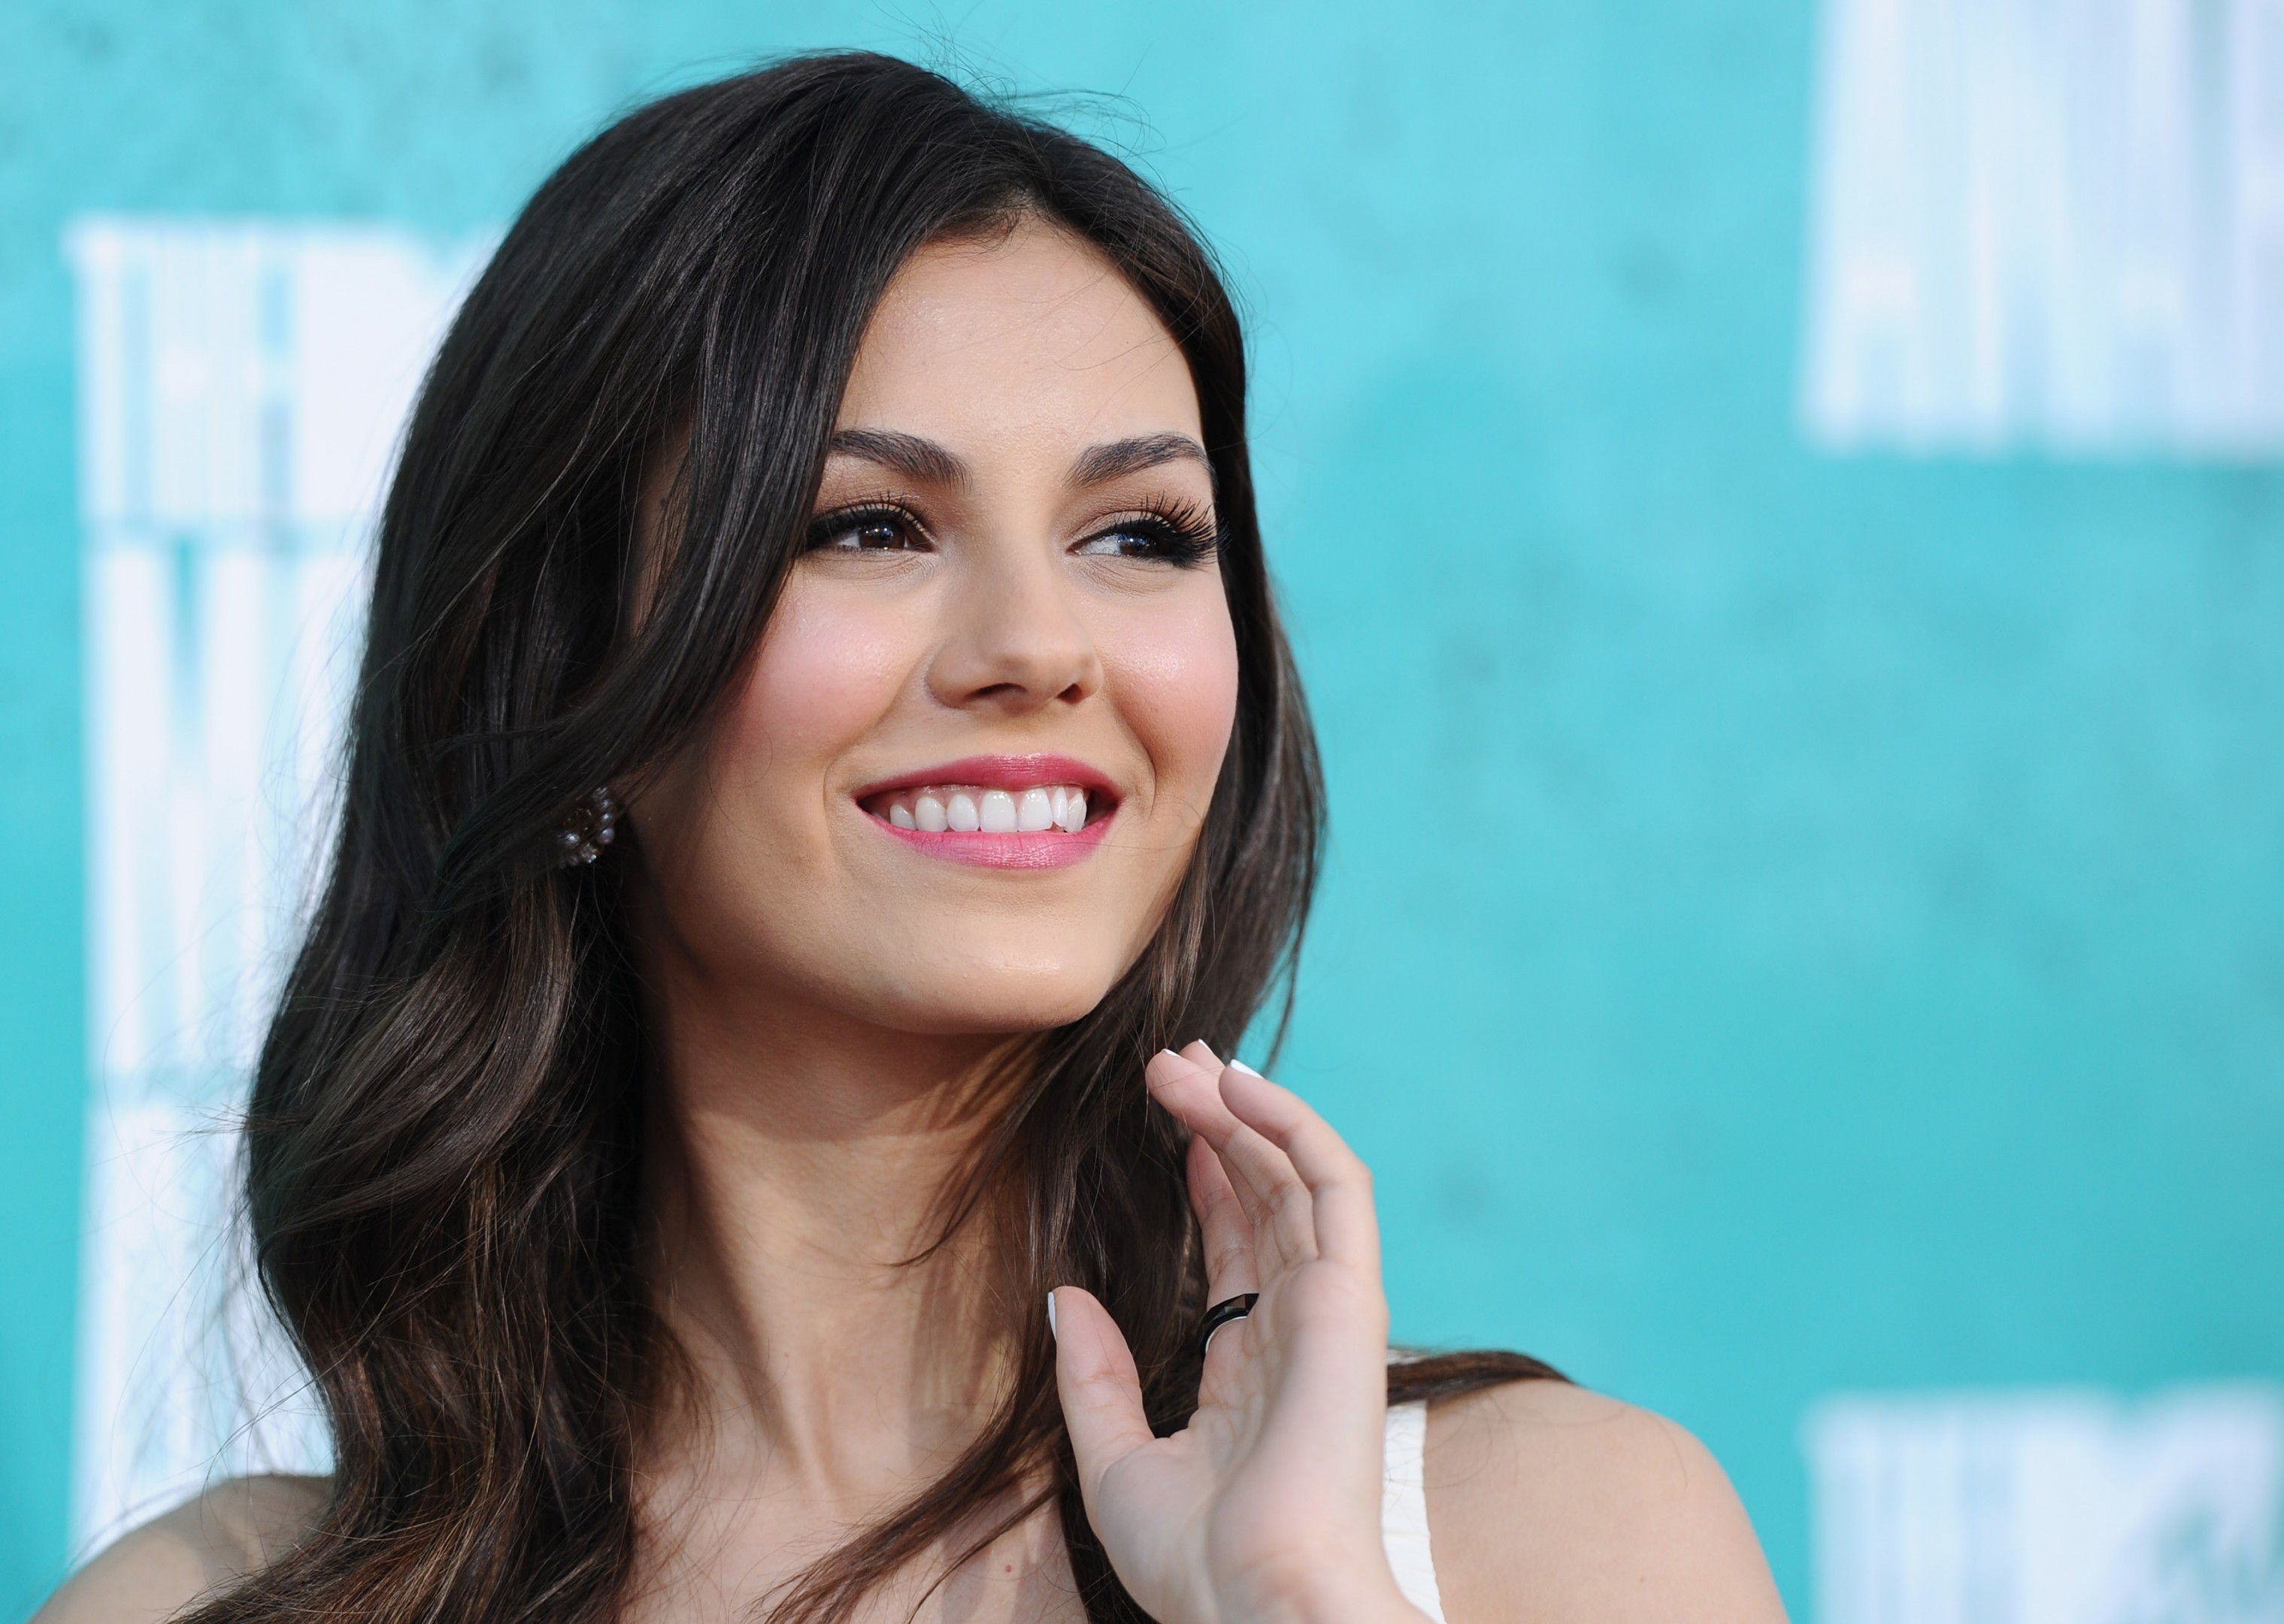 smiling victoria justice cute look laptop background free hd pictures